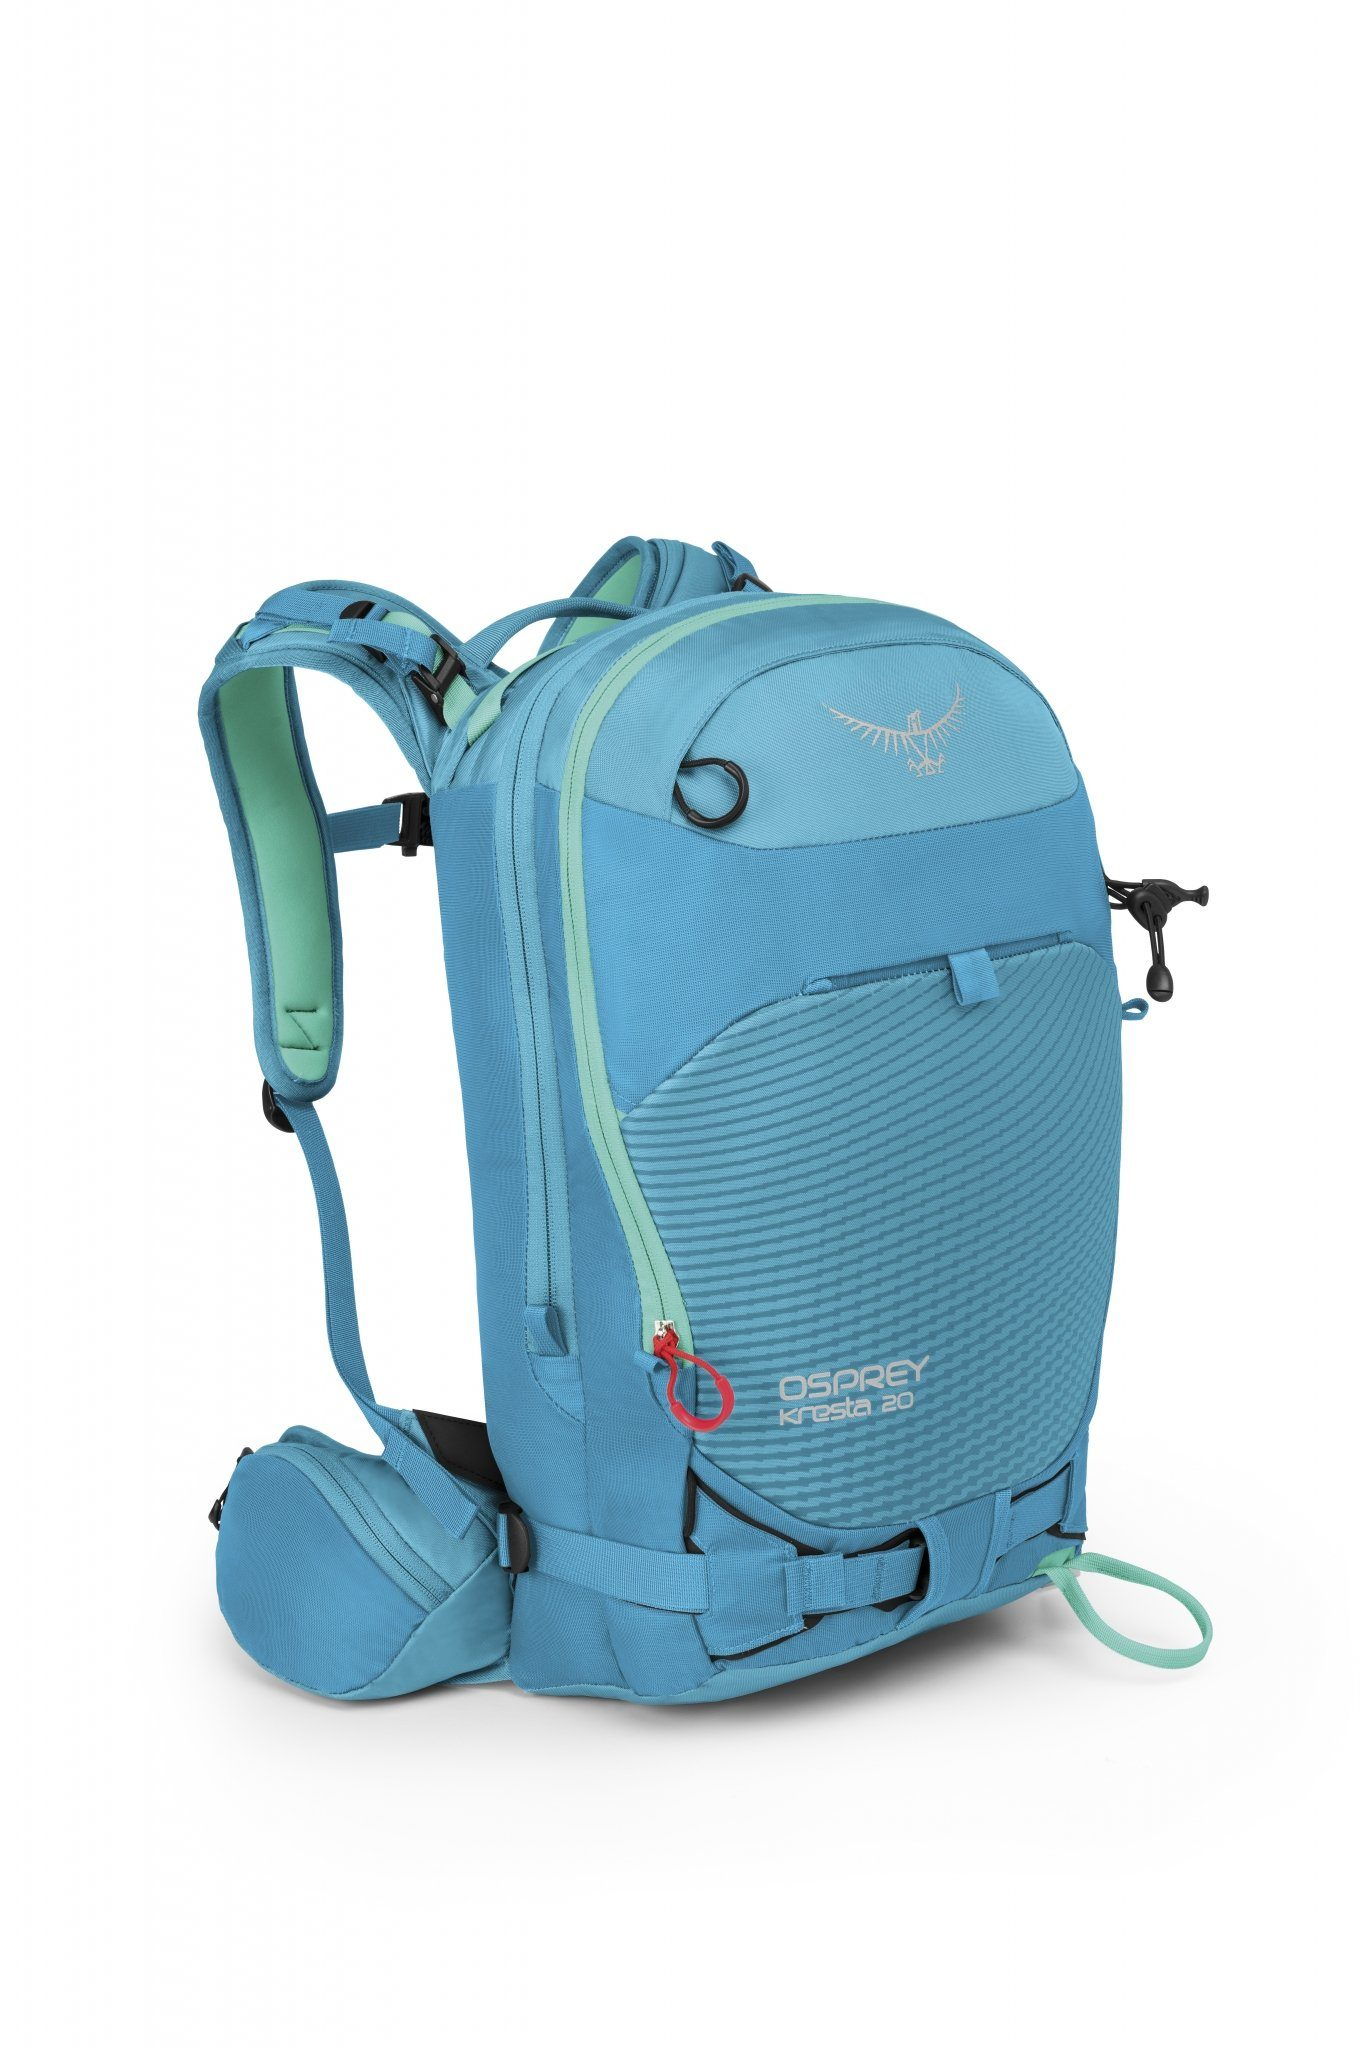 Osprey Wanderrucksack »Kresta 20 Backpack Women«